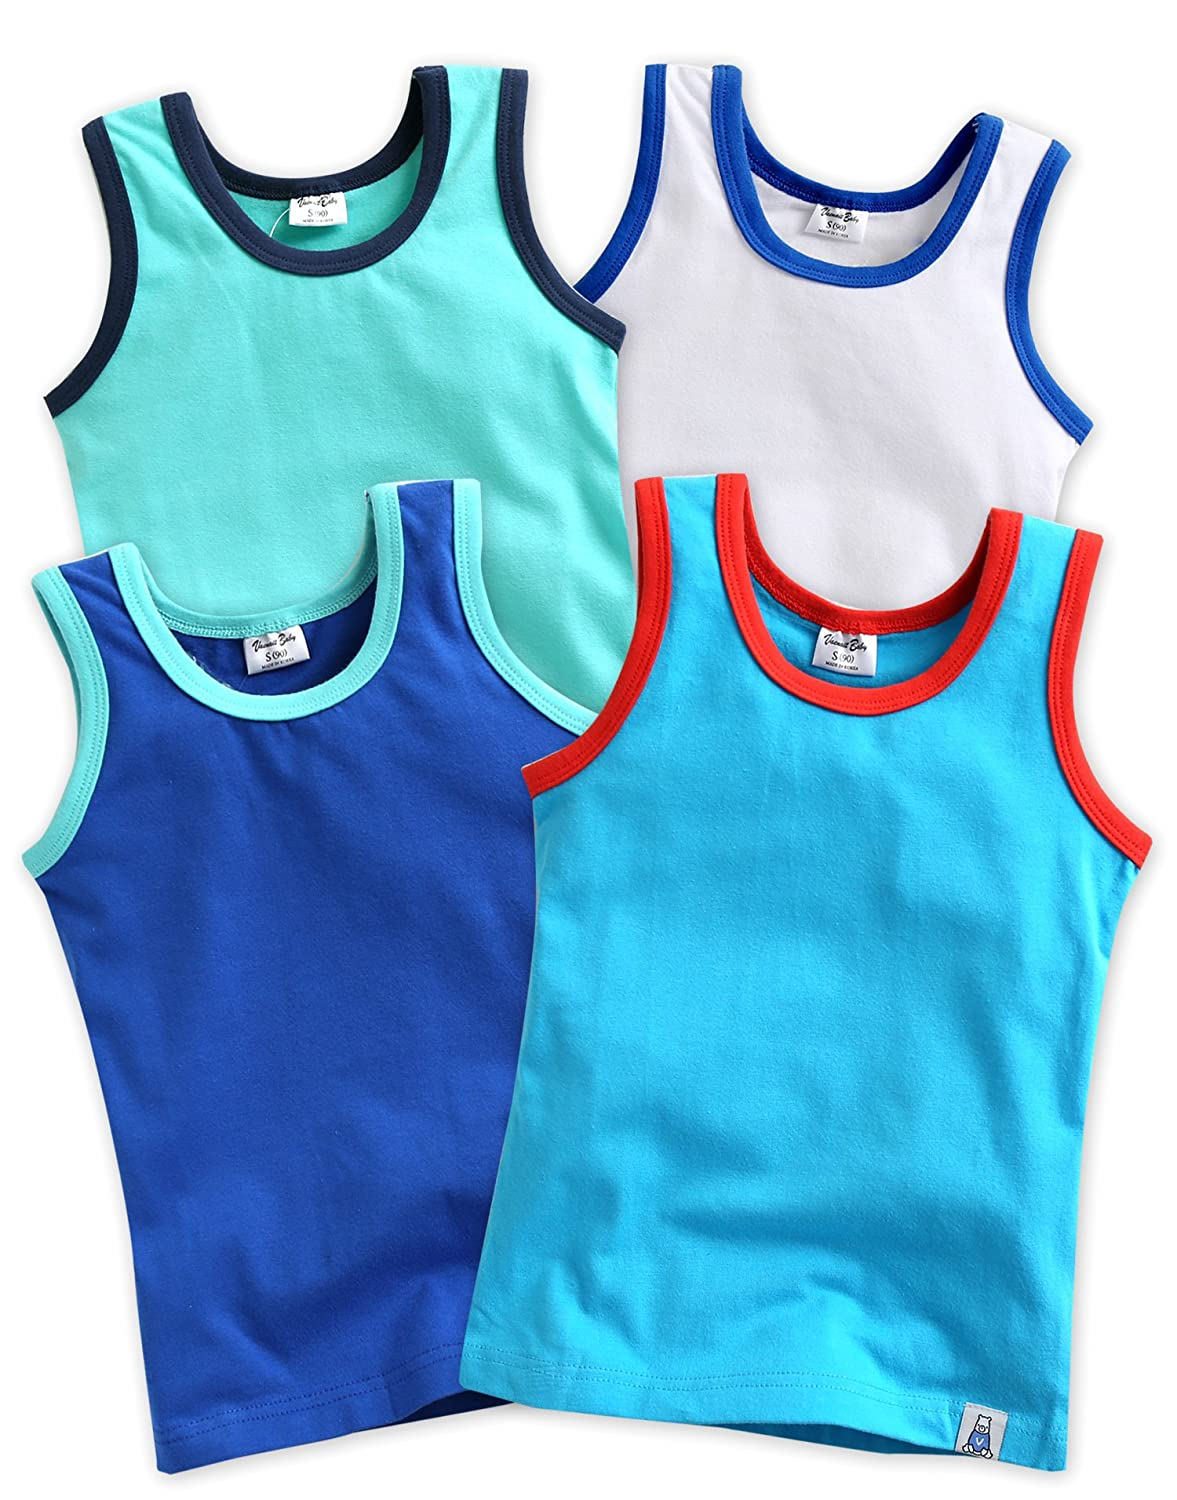 4 Pack Undershirts Days Mint / White / Blue / Sky M BB_087-2